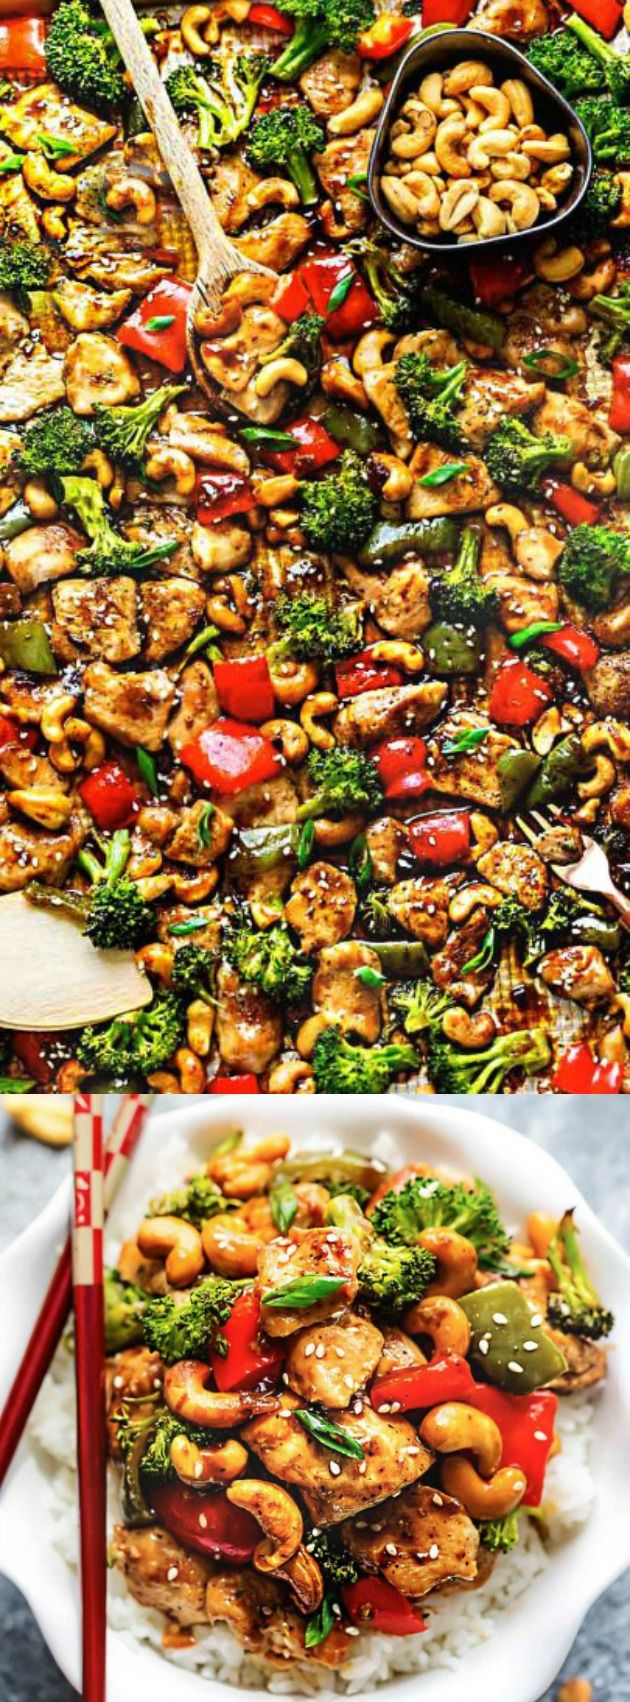 This Sheet Pan Cashew Chicken from The Recipe Critic is an easy weeknight meal inspired by your favorite take out! Tender chicken is surrounded by crisp veggies, crunchy cashews, and an incredible sweet and savory sauce!